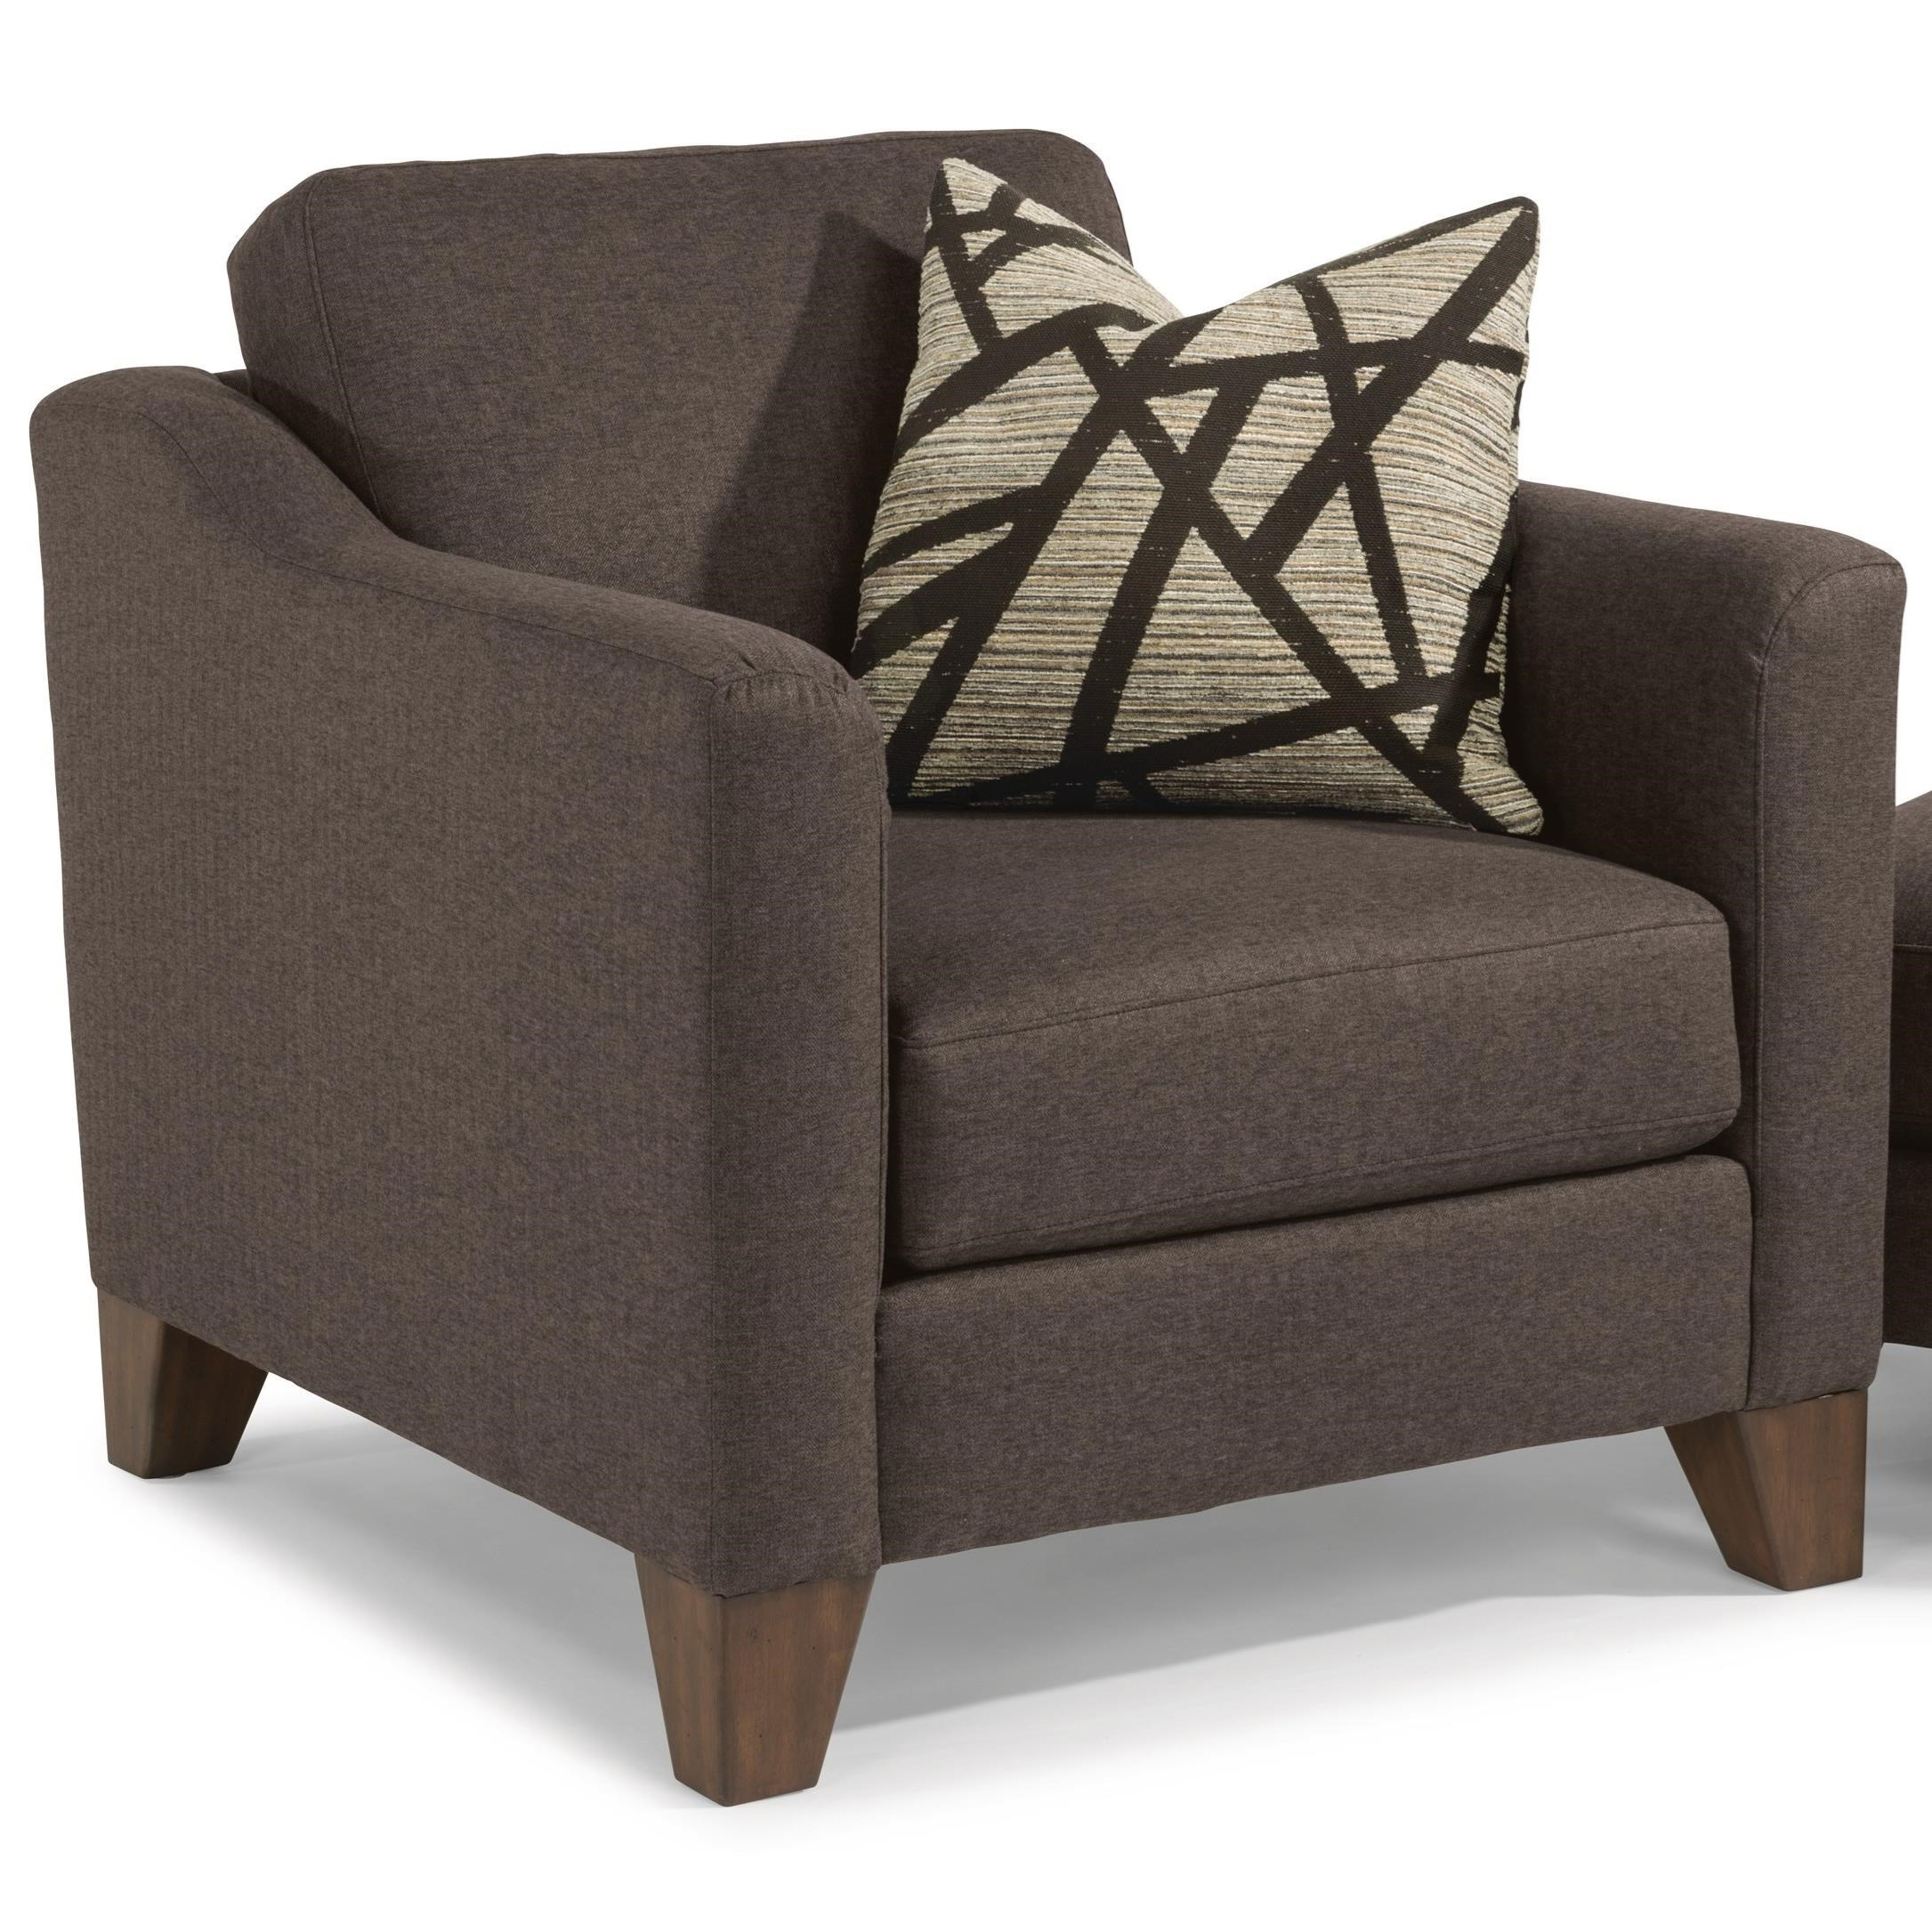 Flexsteel Jordan Transitional Chair With Tapered Wood Legs | Darvin  Furniture | Upholstered Chairs